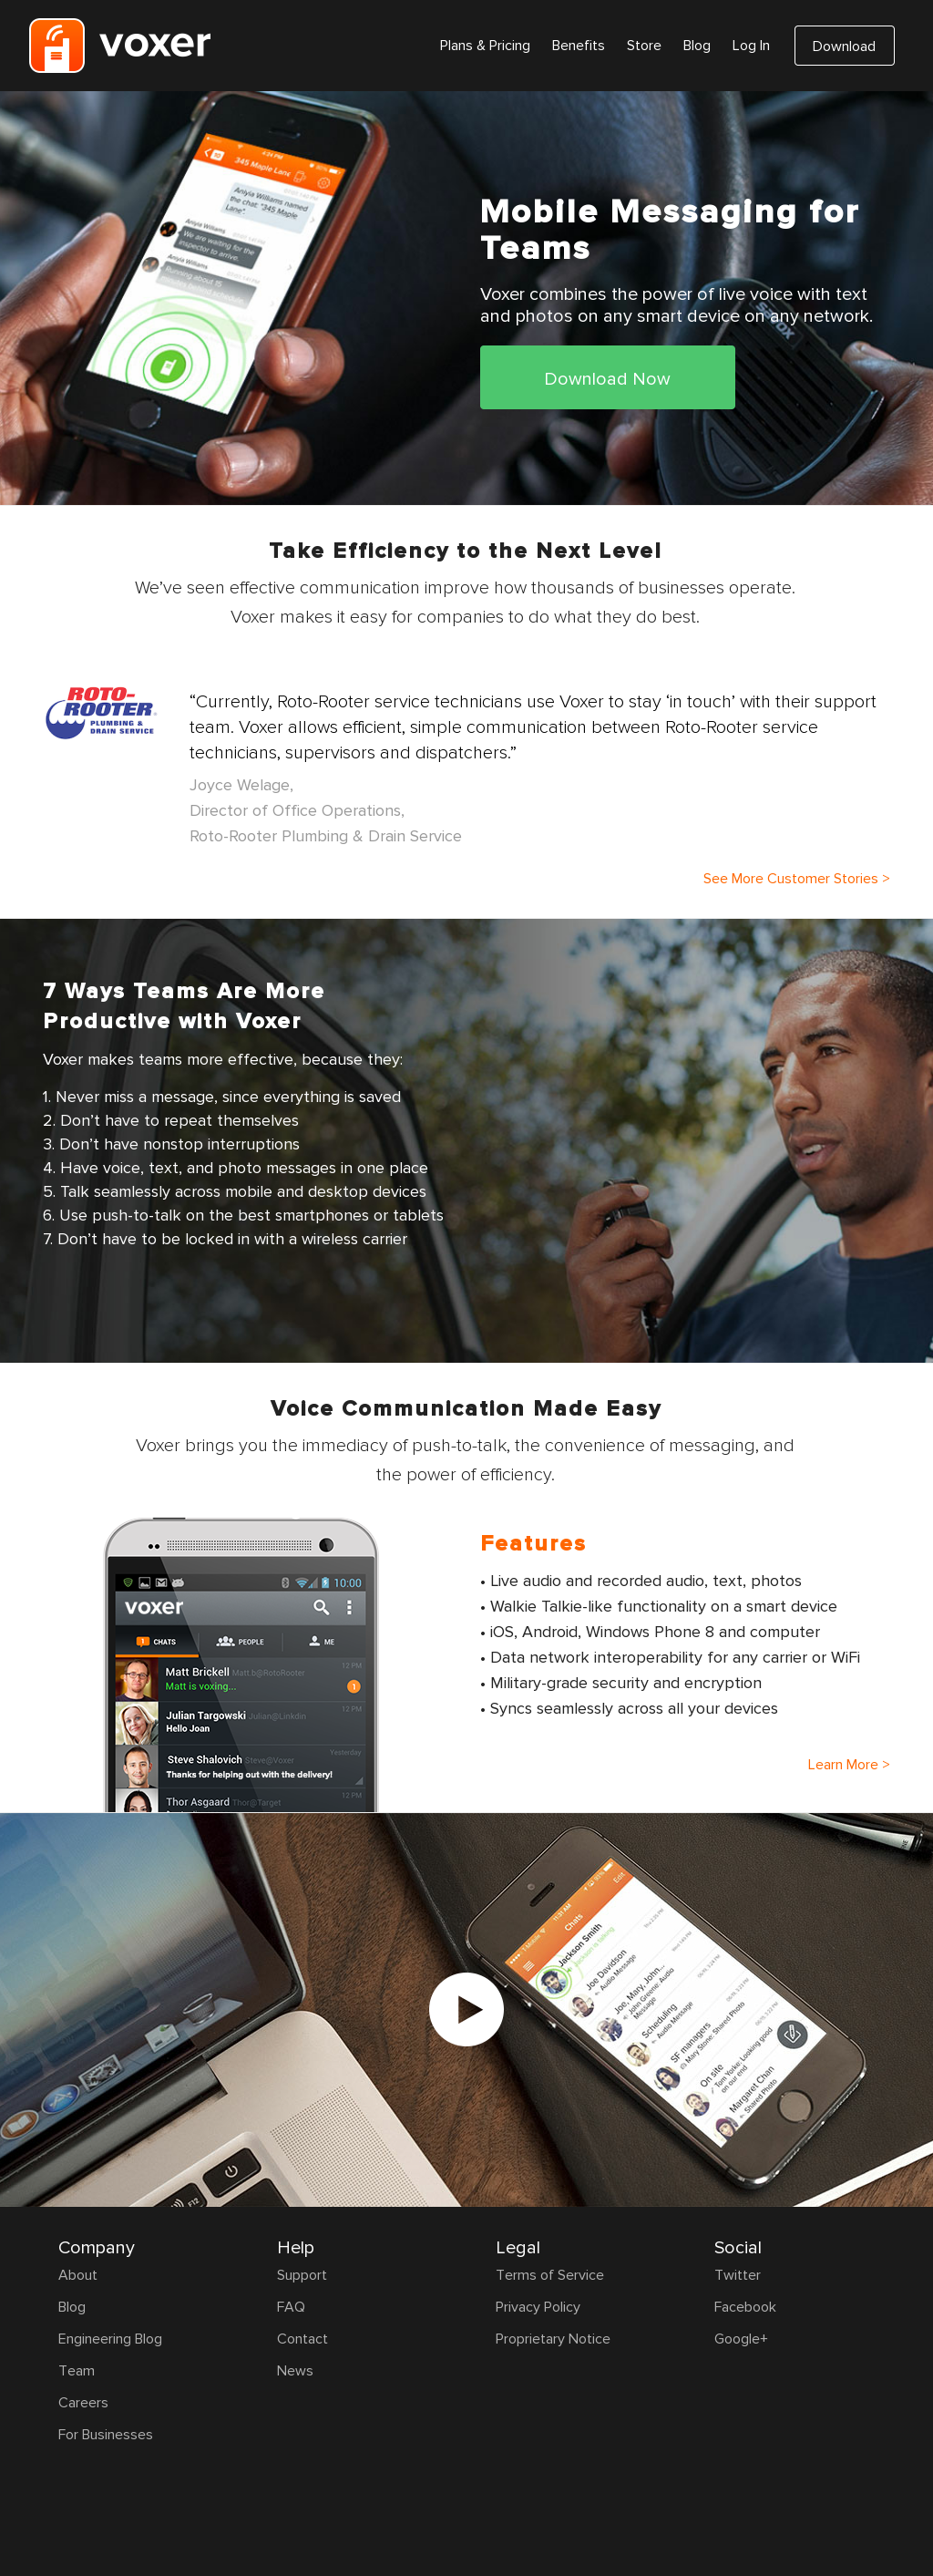 Voxer Competitors, Revenue and Employees - Owler Company Profile